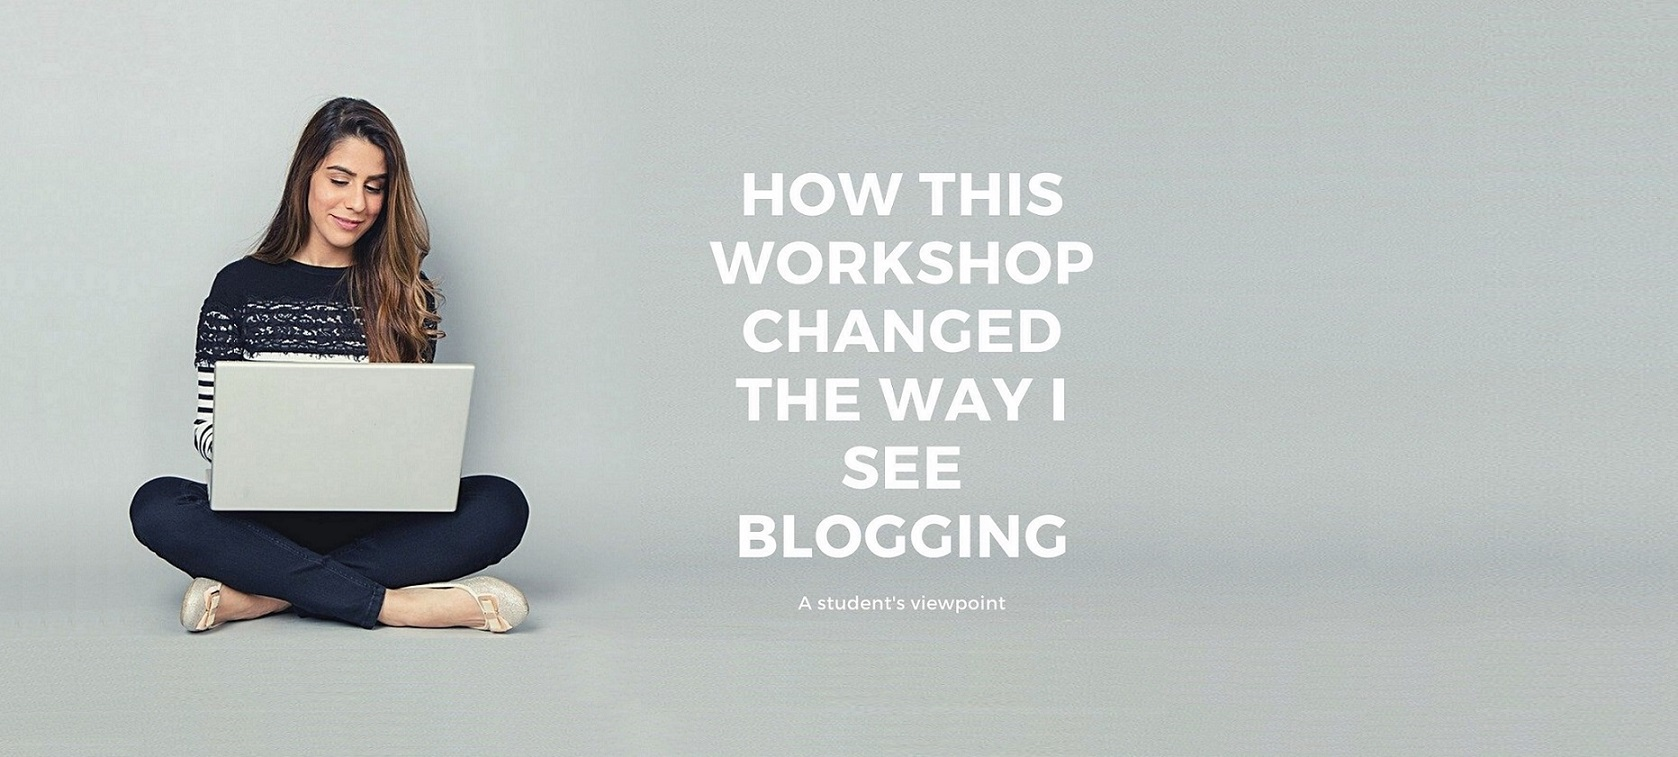 How this Workshop Changed the Way I see Blogging | Charikleia Sachpazidou